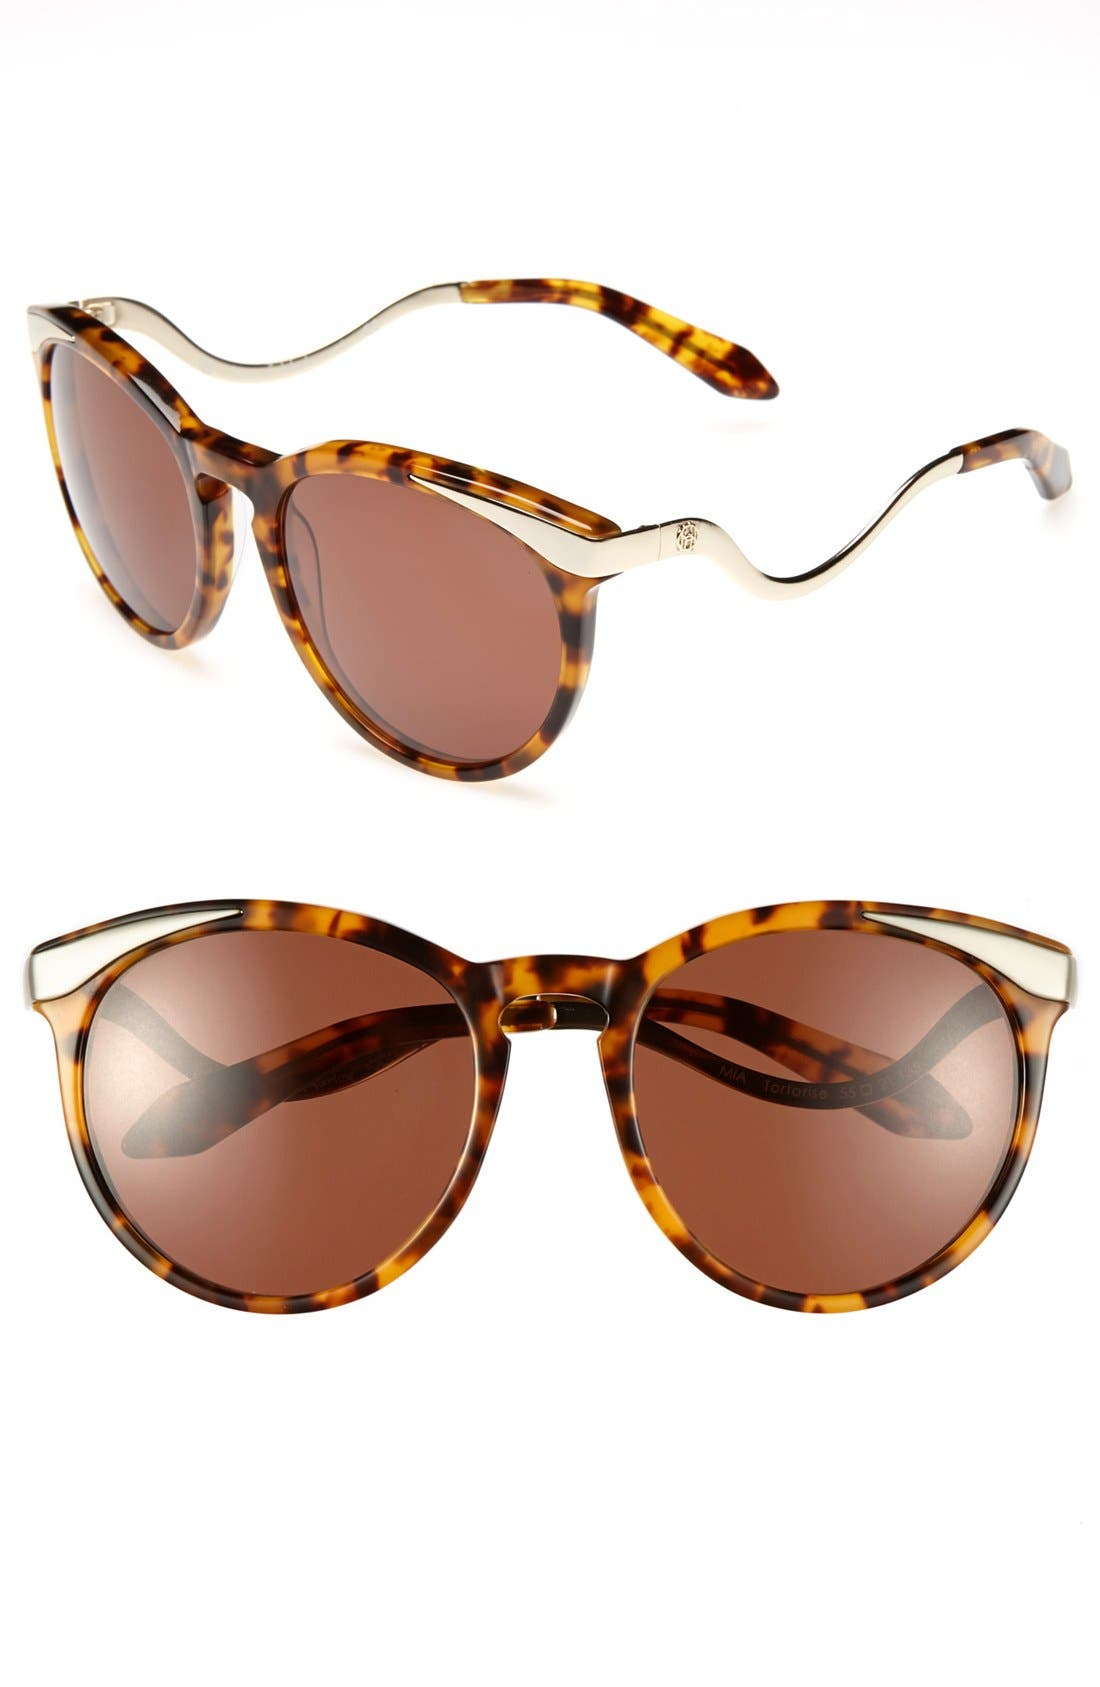 Main Image - House of Harlow 1960 'Mia Hoh' 55mm Sunglasses